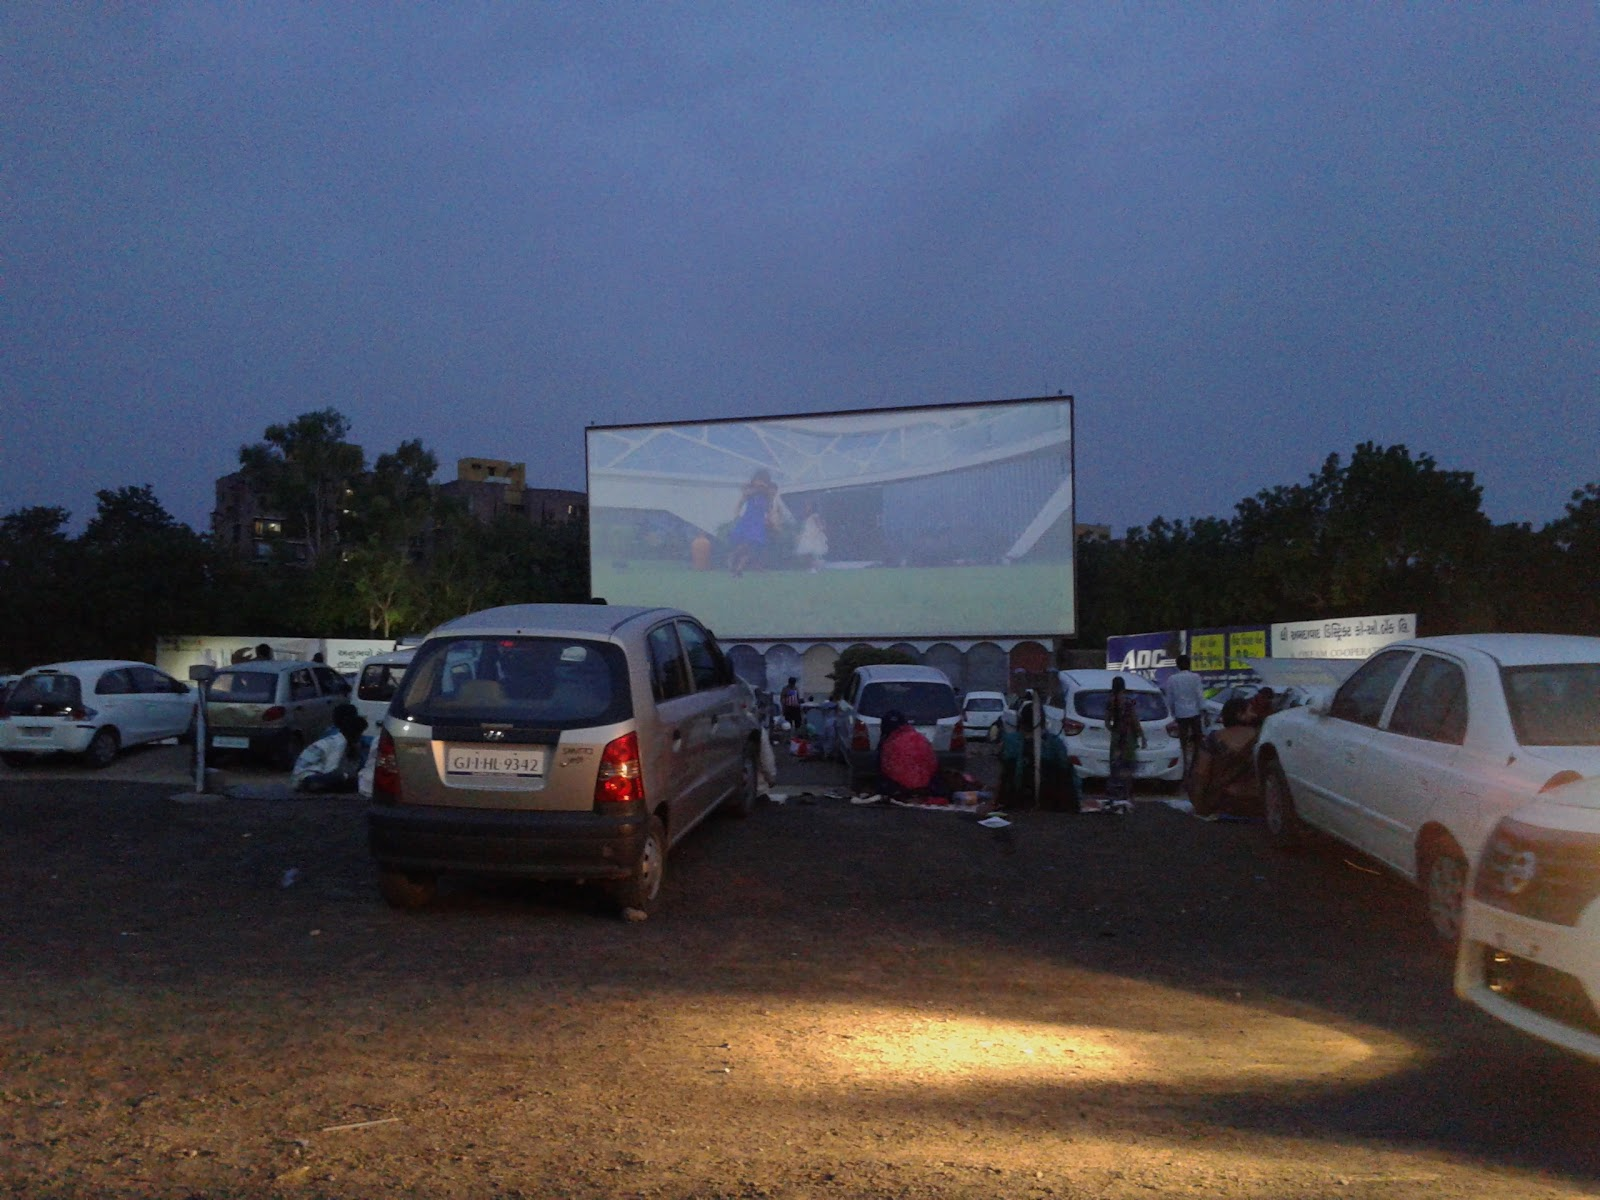 Sunset Drive-In Cinema